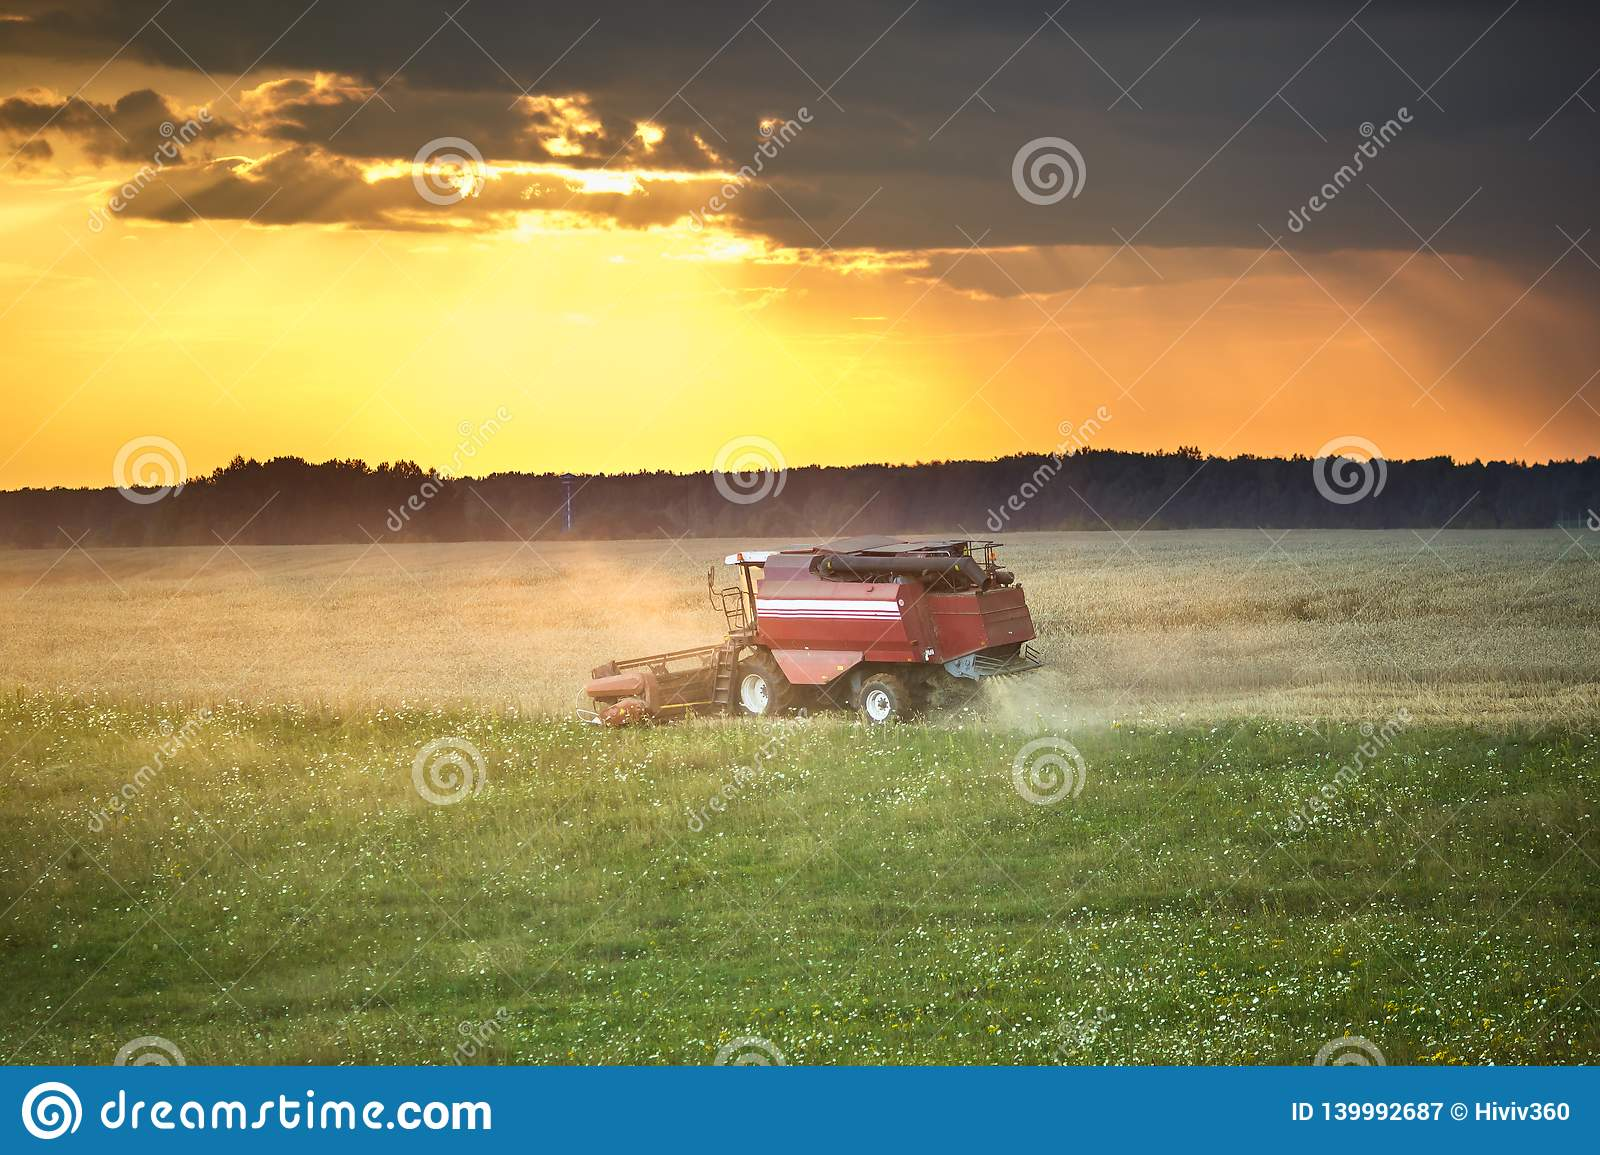 Modern heavy harvester removes the ripe wheat bread in field before the storm. Seasonal agricultural work